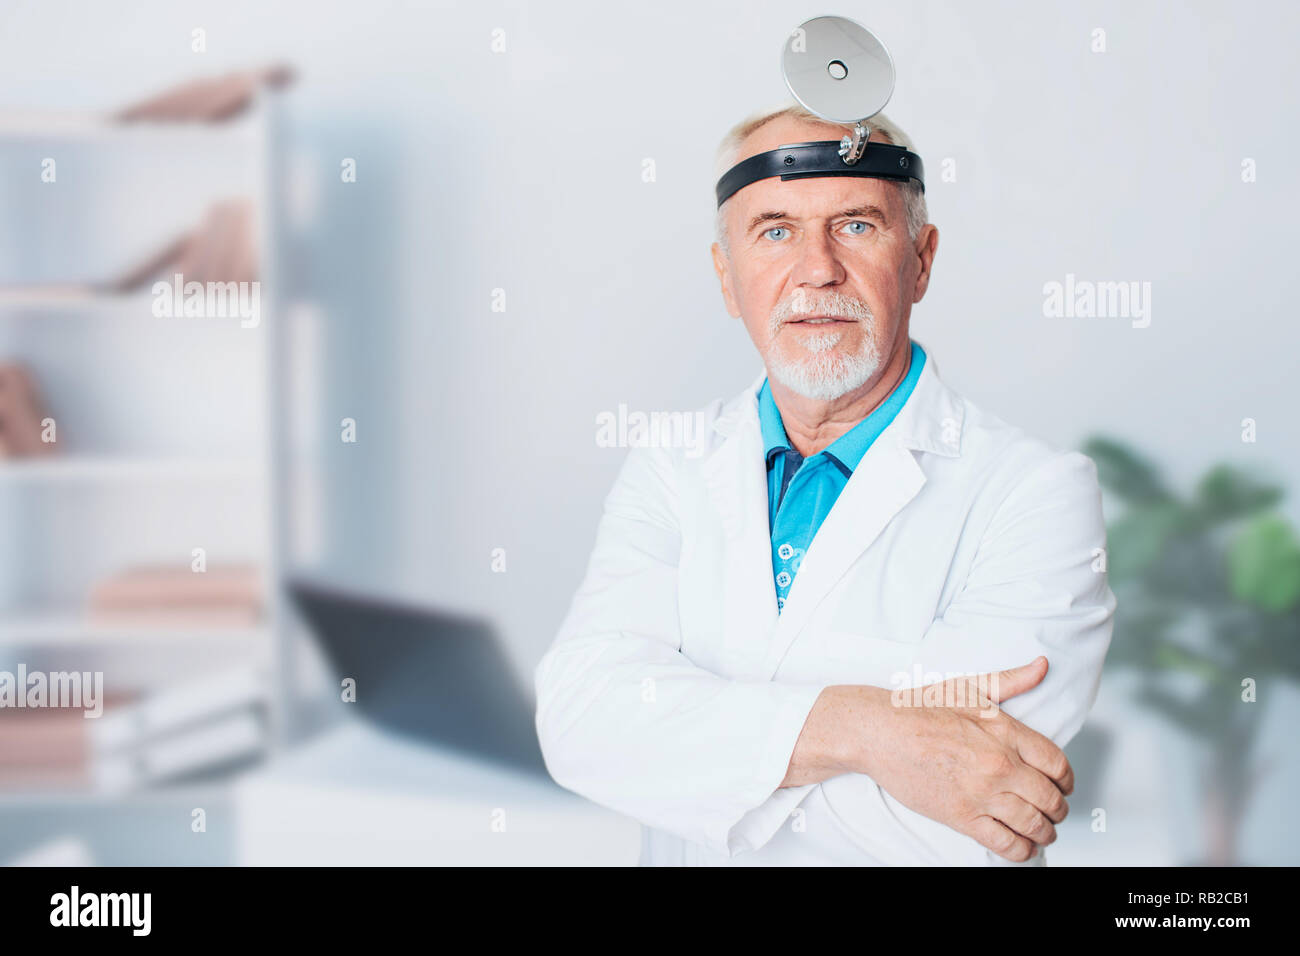 mature ENT doctor, elderly man standing at medical clinic Stock Photo